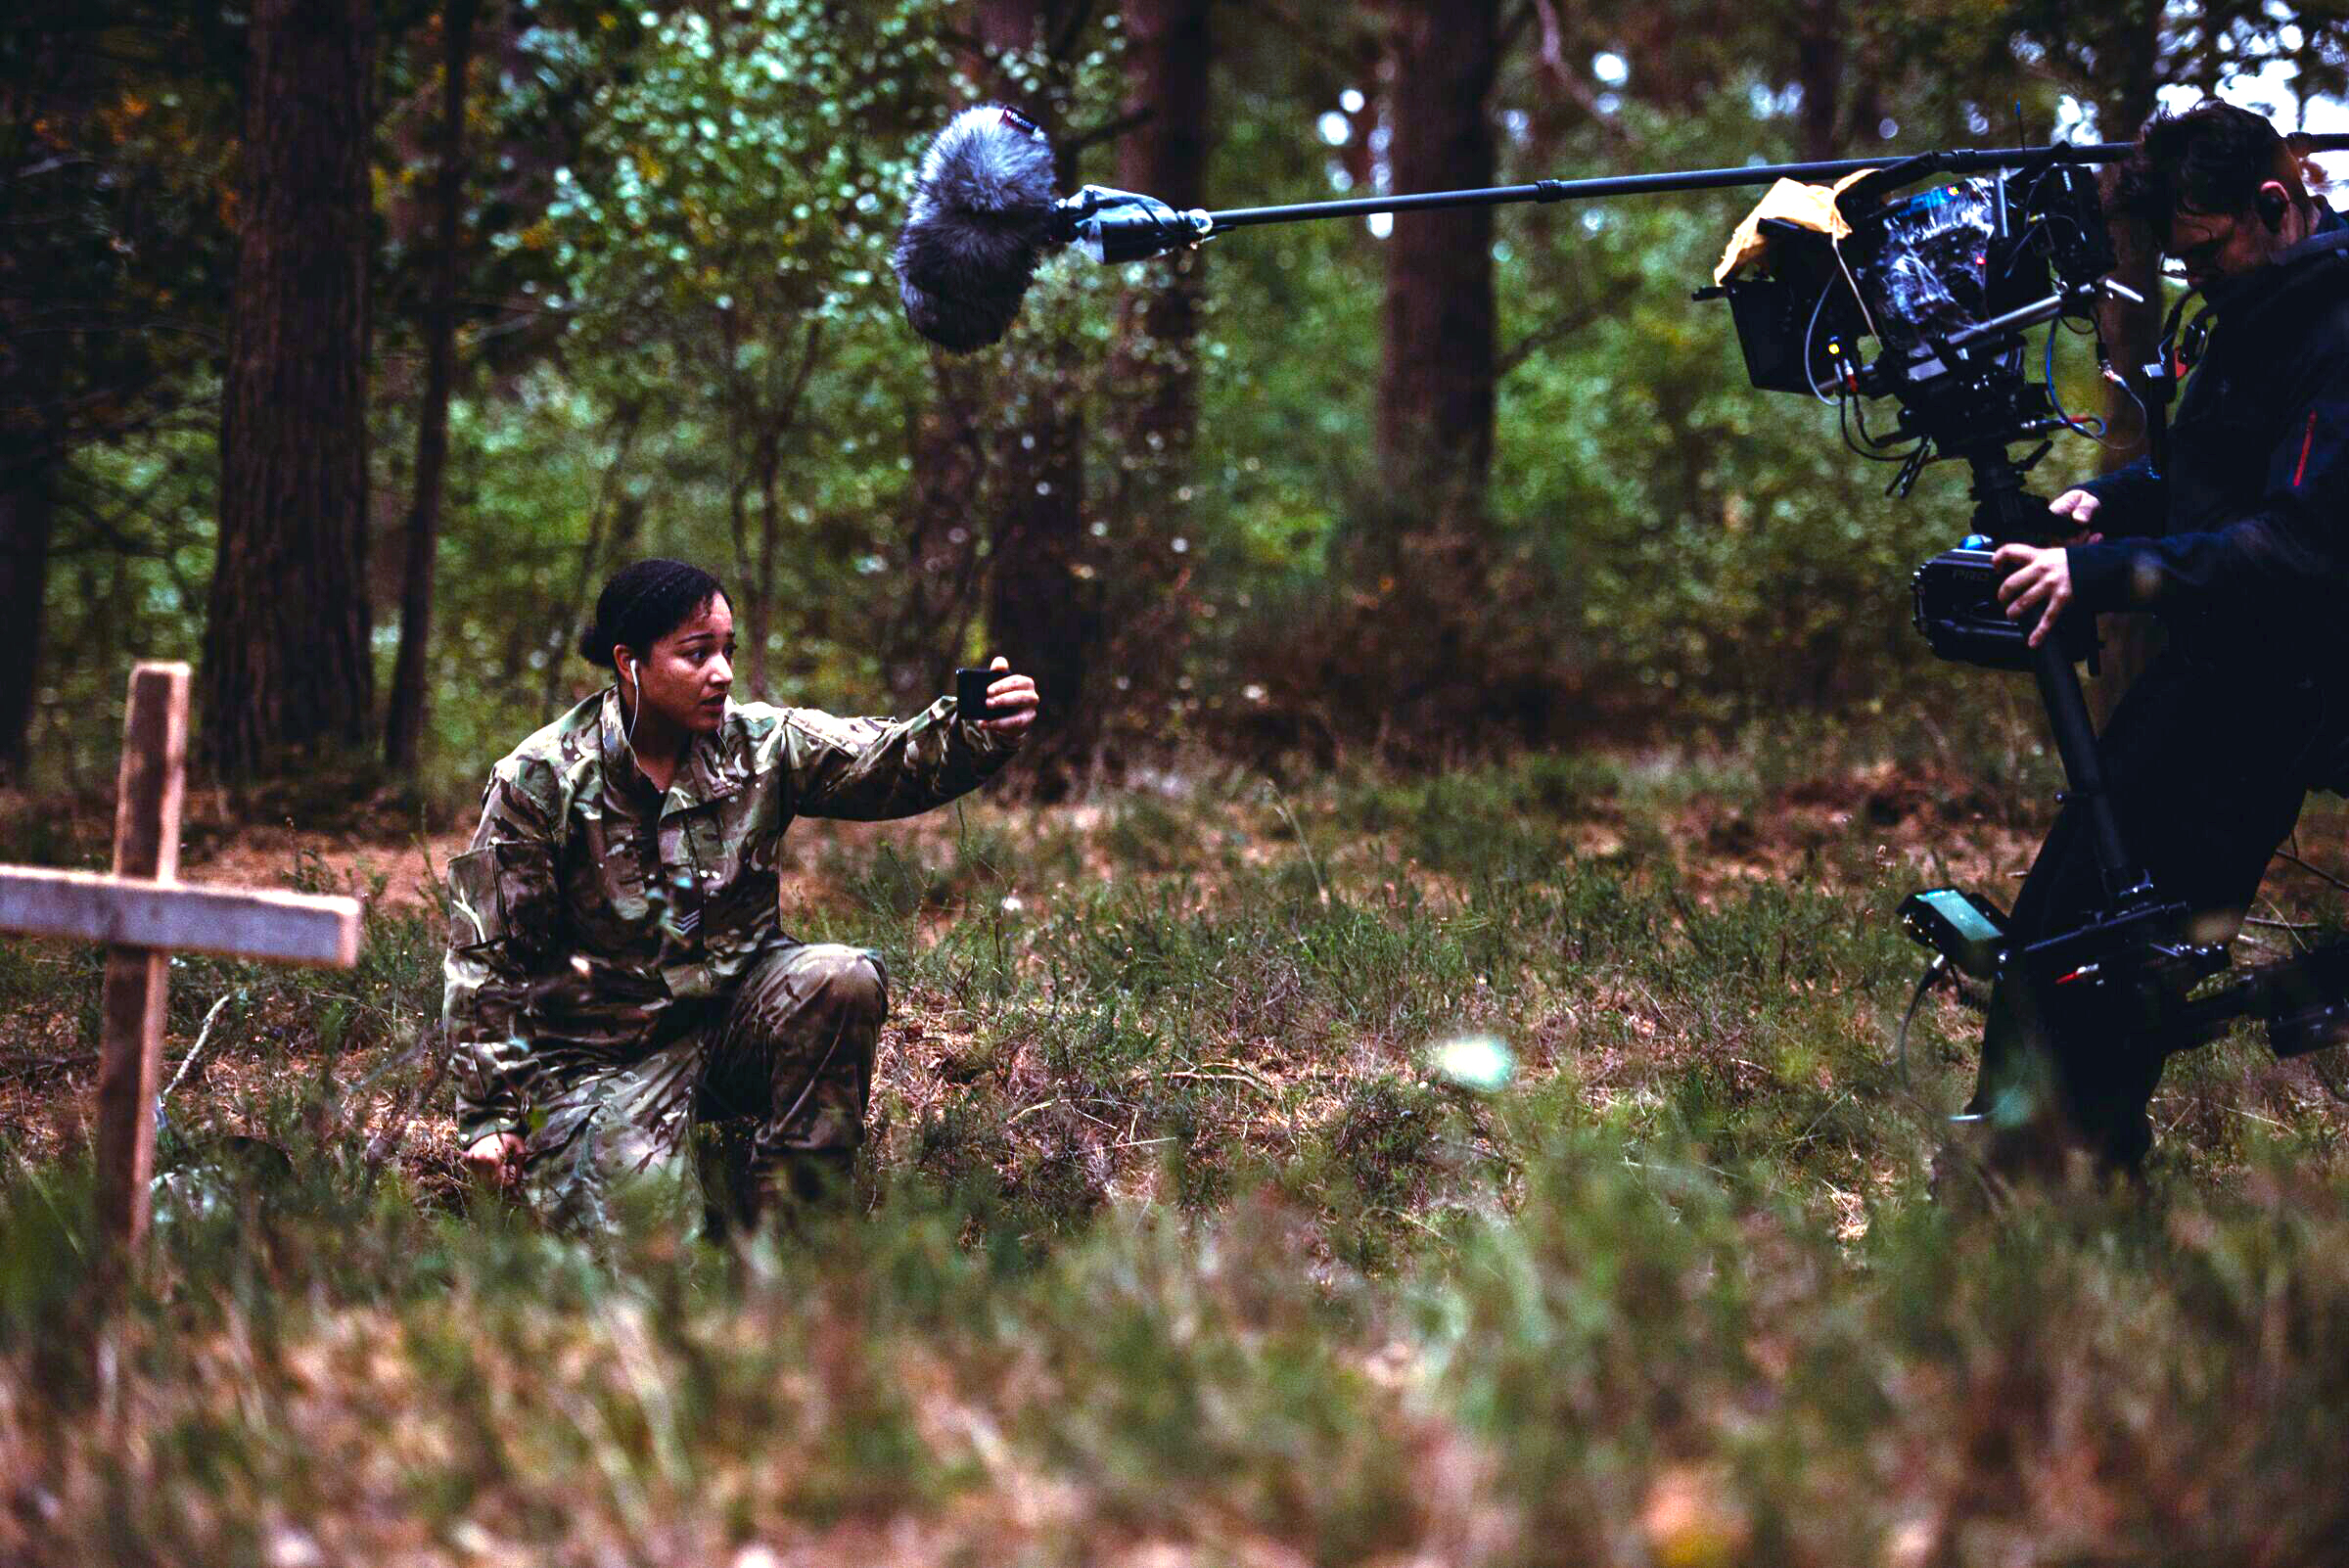 Equality Action Plan Image. A person dressed in camouflage, kneels on the floor holding their phone up in front of their face. A sound and camera crew stand over them with their equipment in view. In front of the camouflaged person is a wooden cross stuck in the ground.